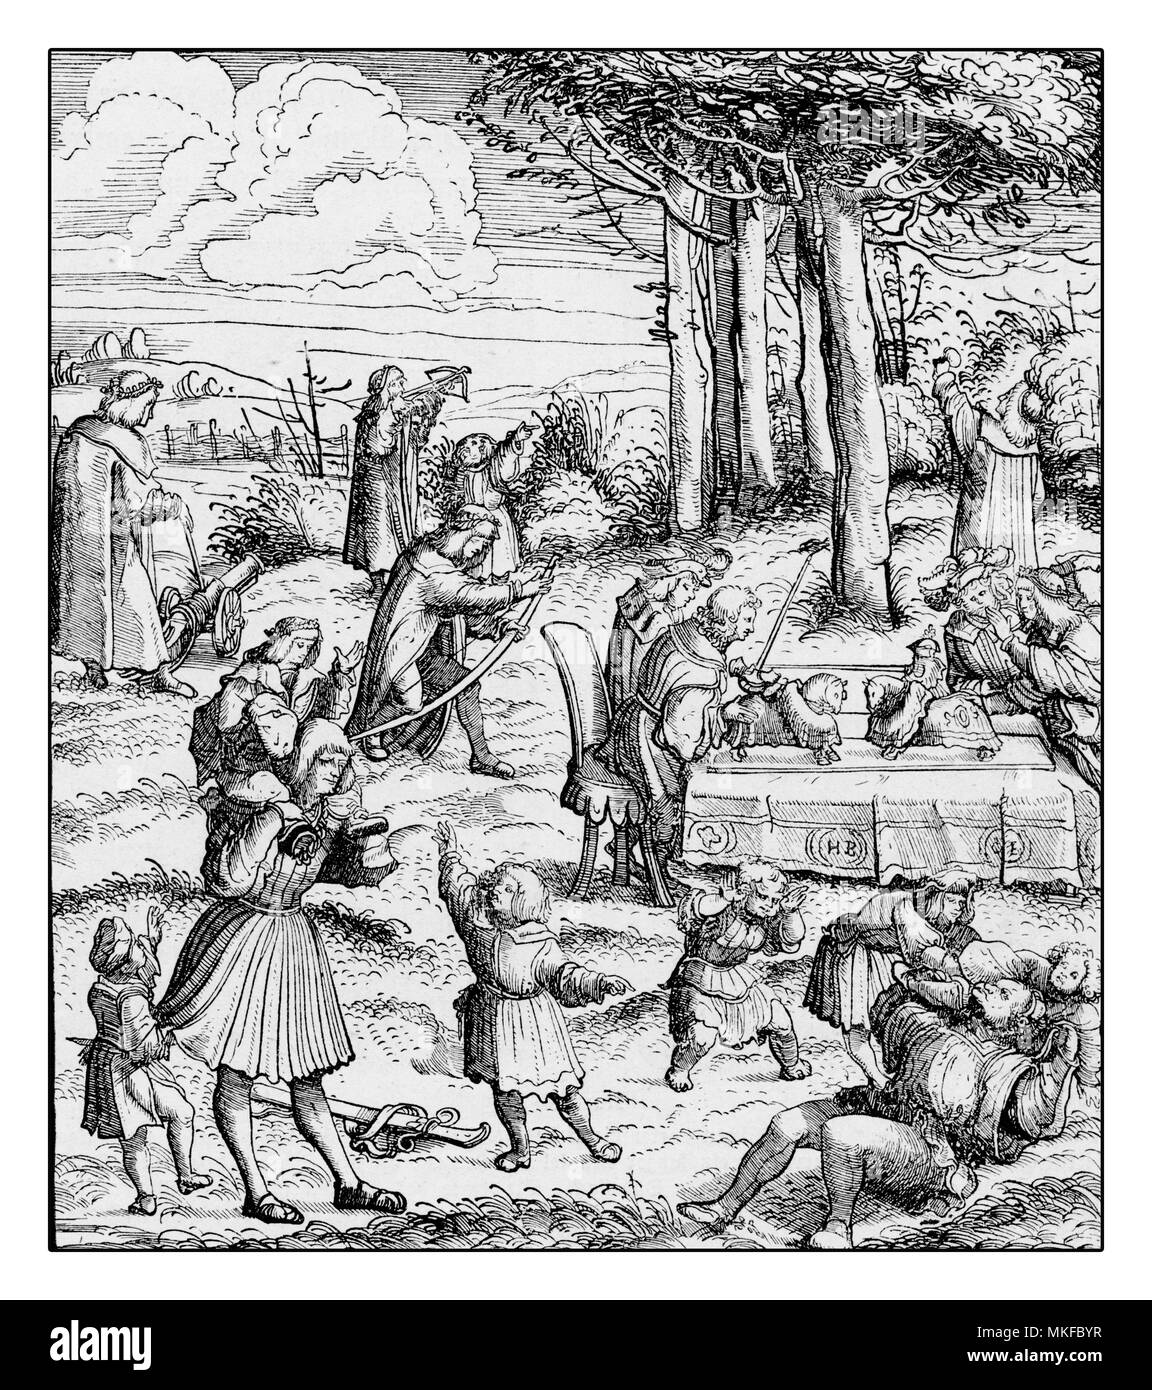 Medieval illustration of children and adults playing outside by Hans Burgkmair, XVI century - Stock Image